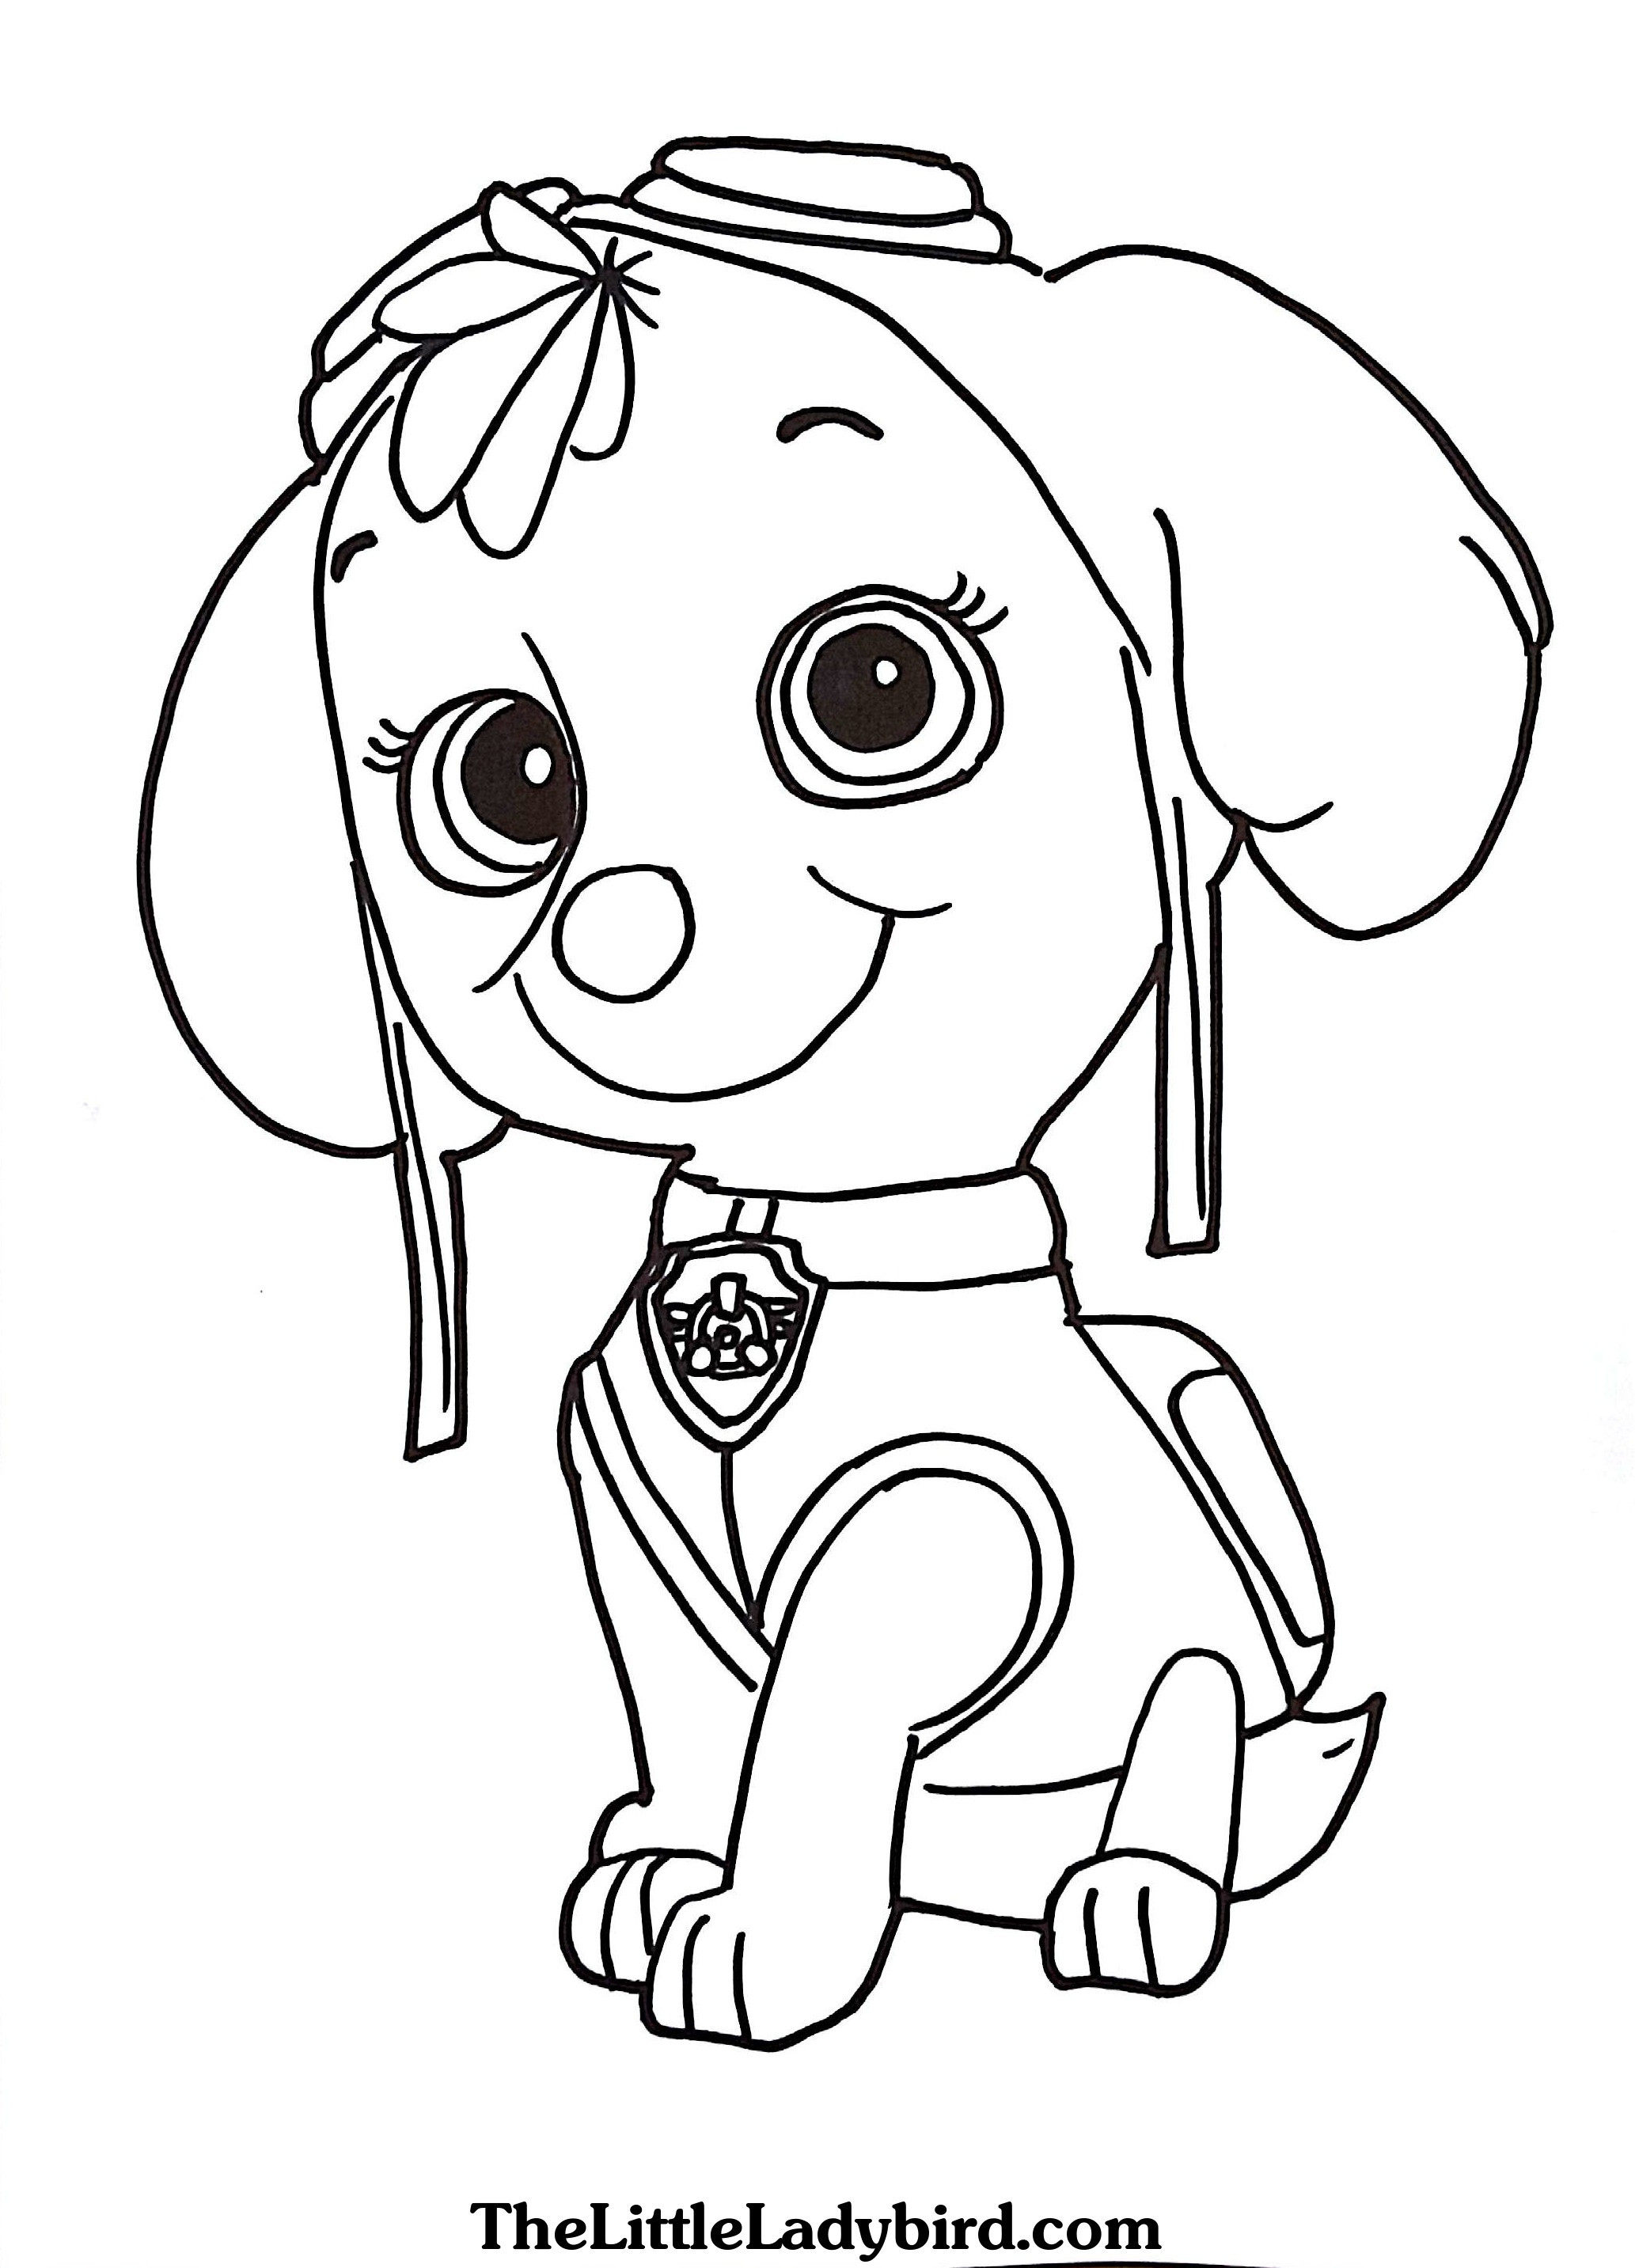 Ryder Paw Patrol Coloring Pages at GetDrawings com | Free